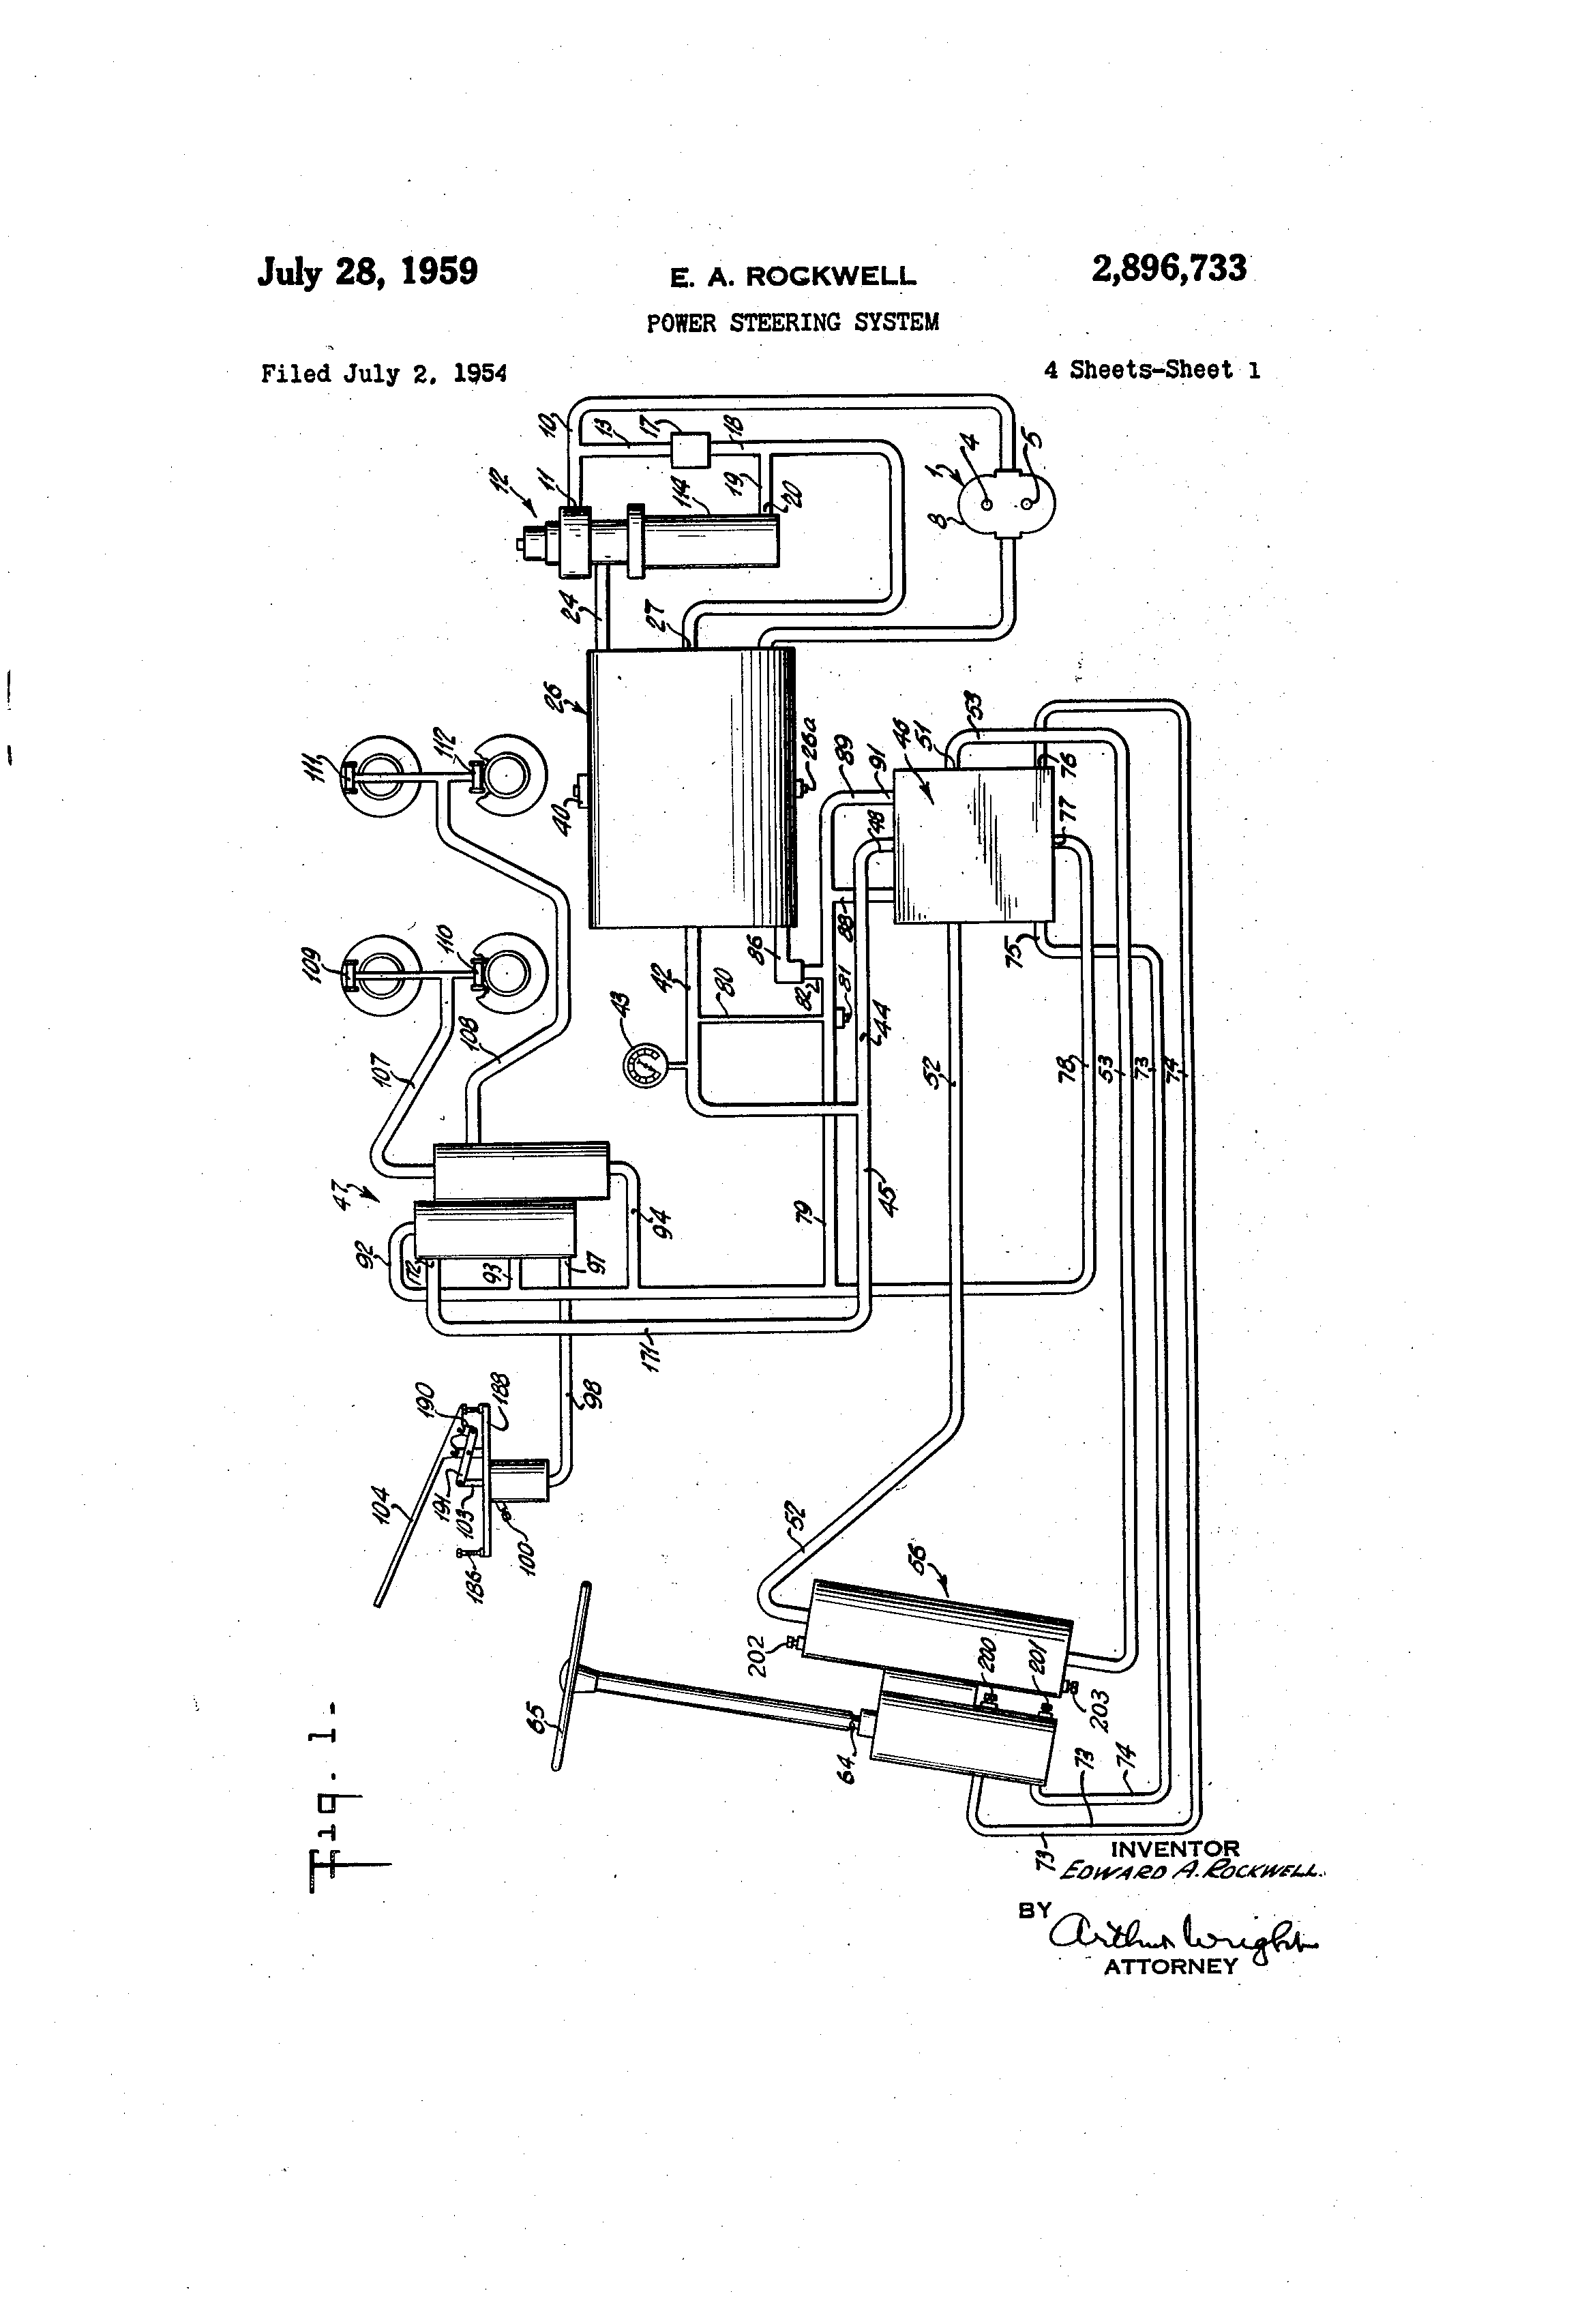 patent us2896733 - power steering system